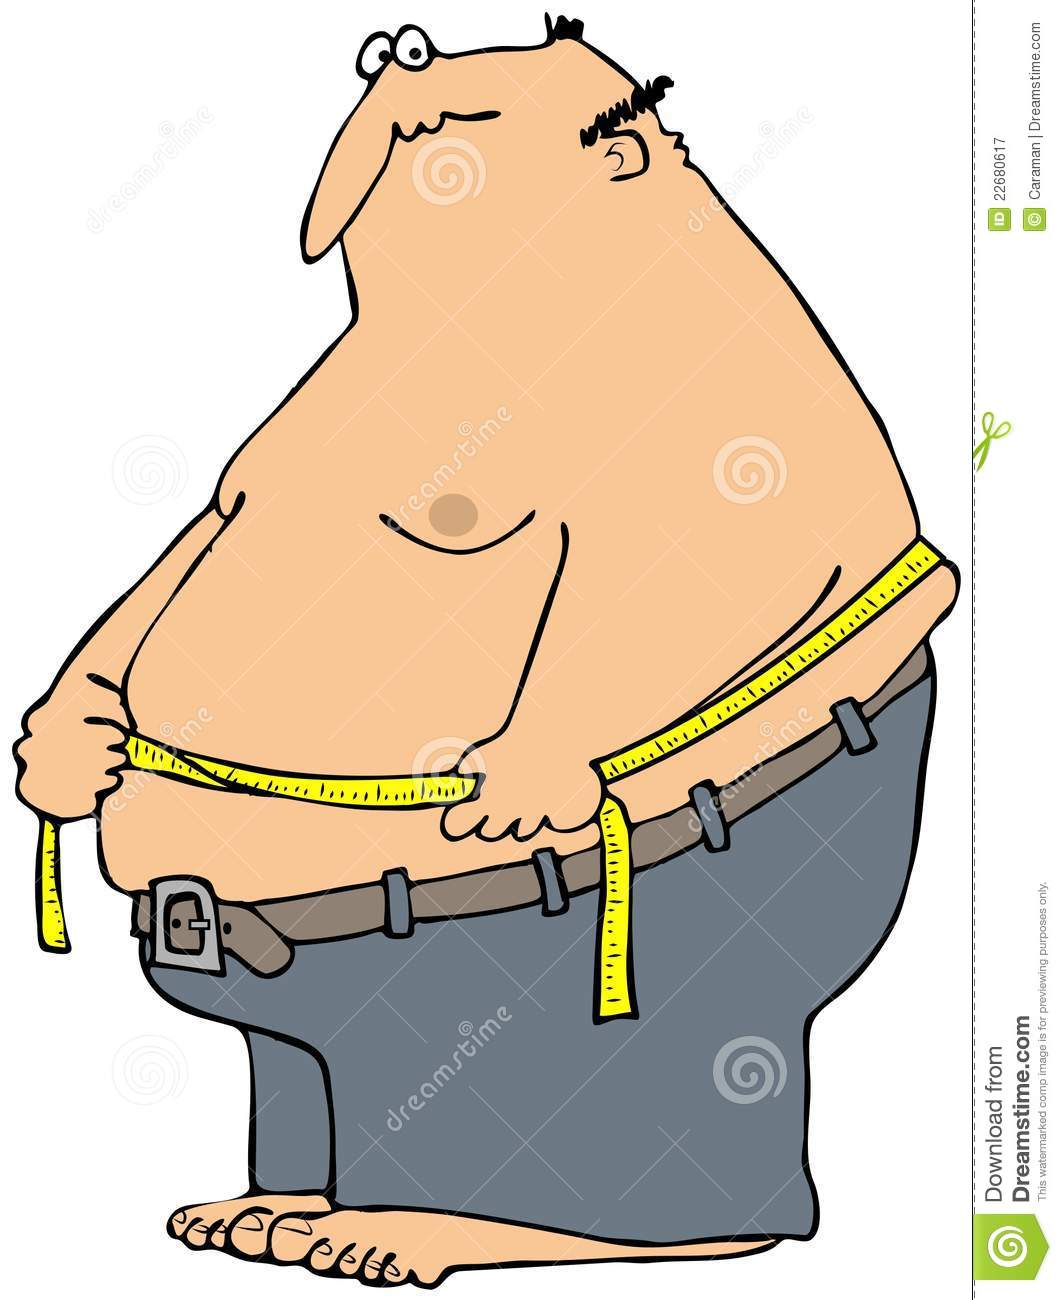 Homme mesurant sa taille